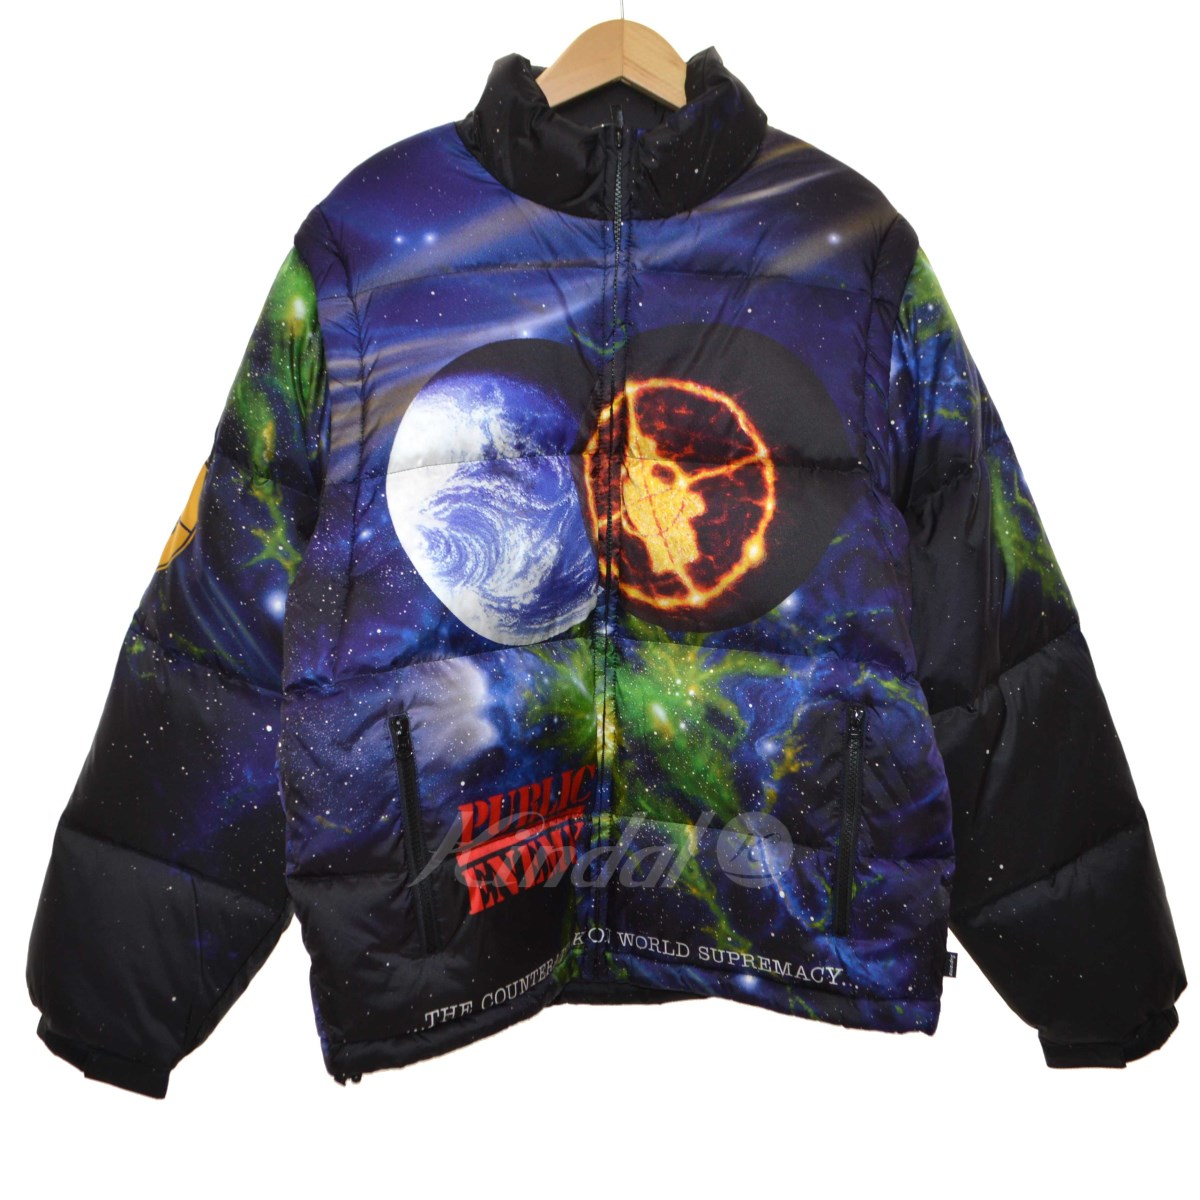 【中古】Supreme x UNDERCOVER 2018SS「Public Enemy Puffy Jacket」ダウンジャケット 【送料無料】 【026314】 【HR1471】 【返品不可】